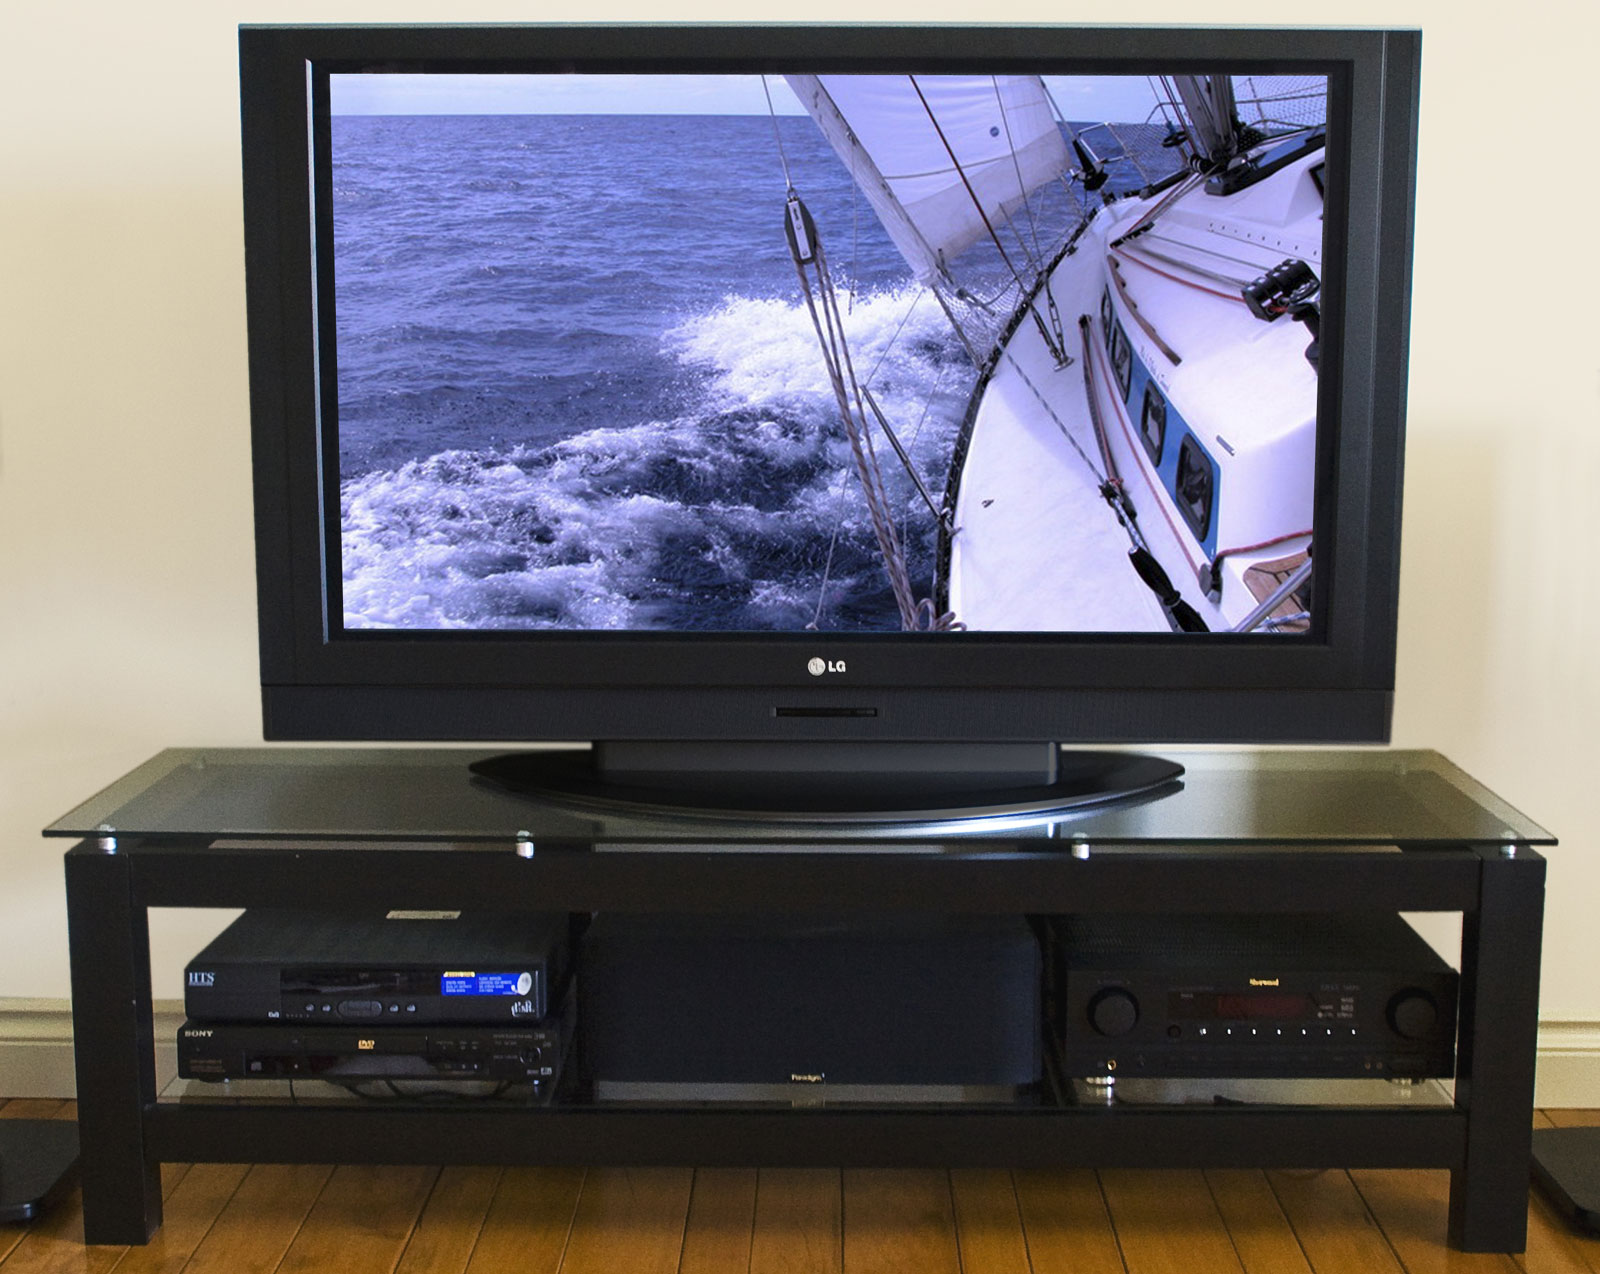 50 Inch Entertainment Center Part - 49: 50 Inch Low Profile Flat Screen TV Stand - Glass Shelf Price: $353.99